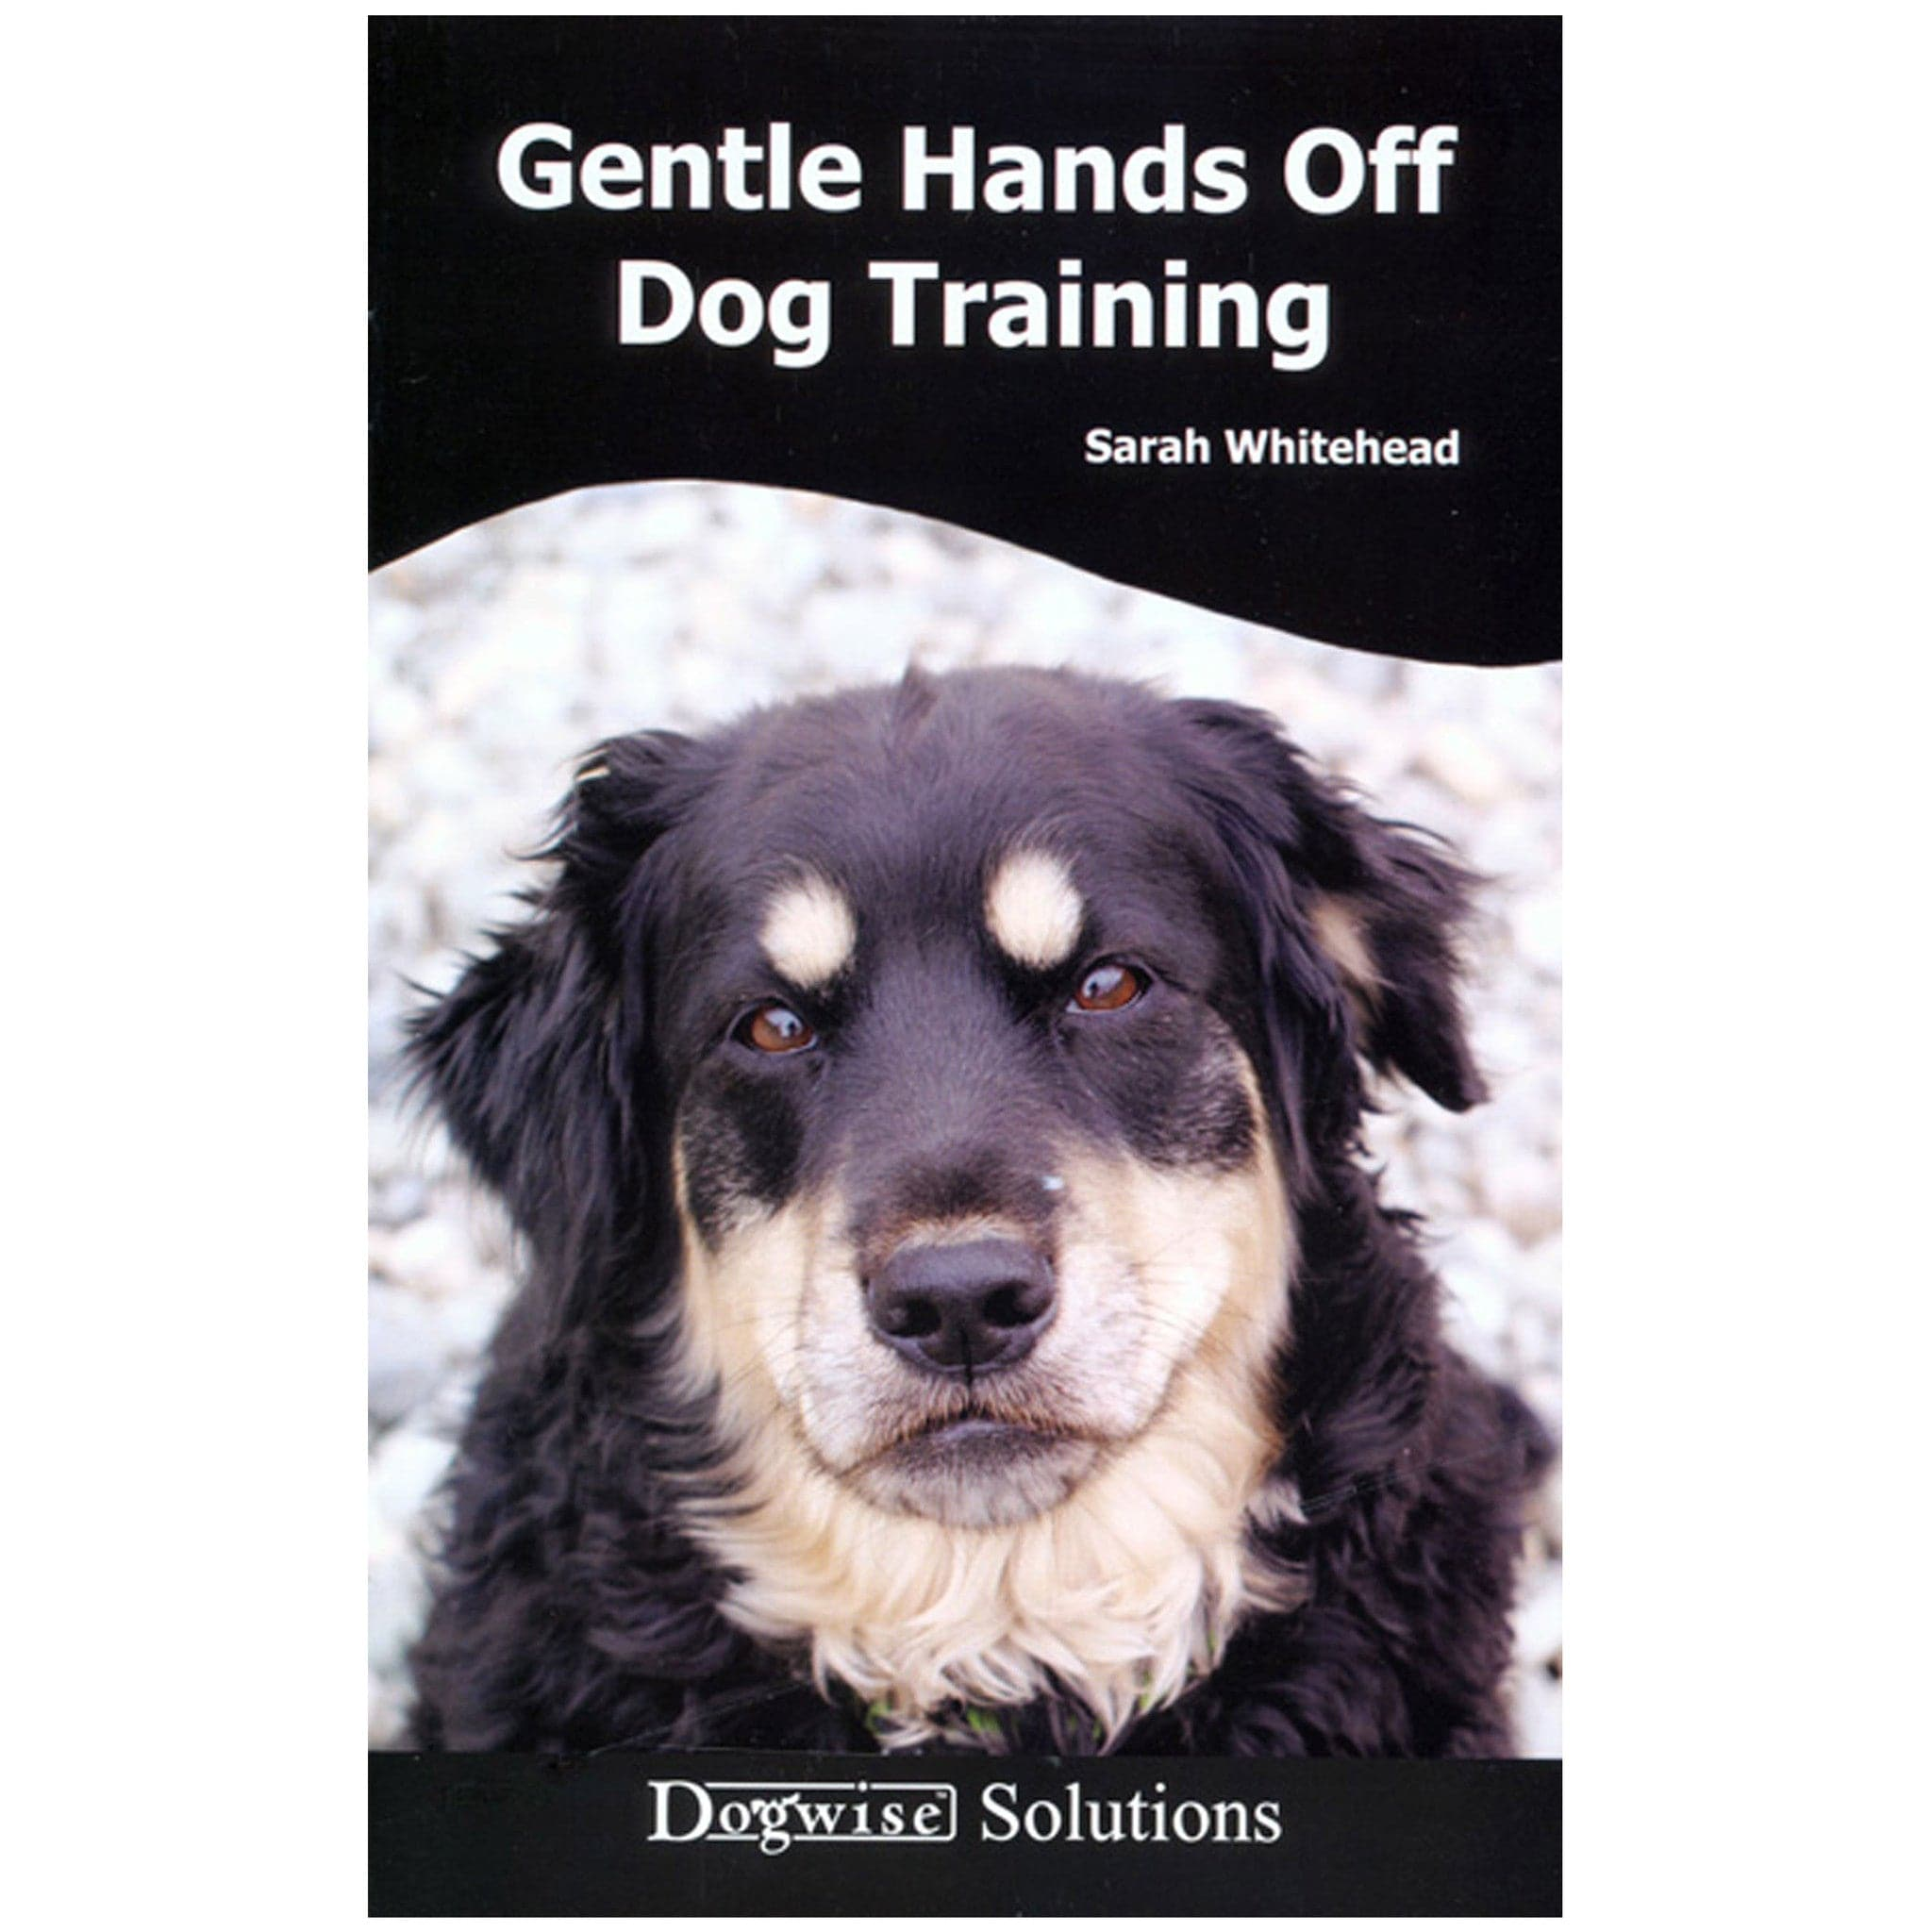 Gentle Hands Off Dog Training